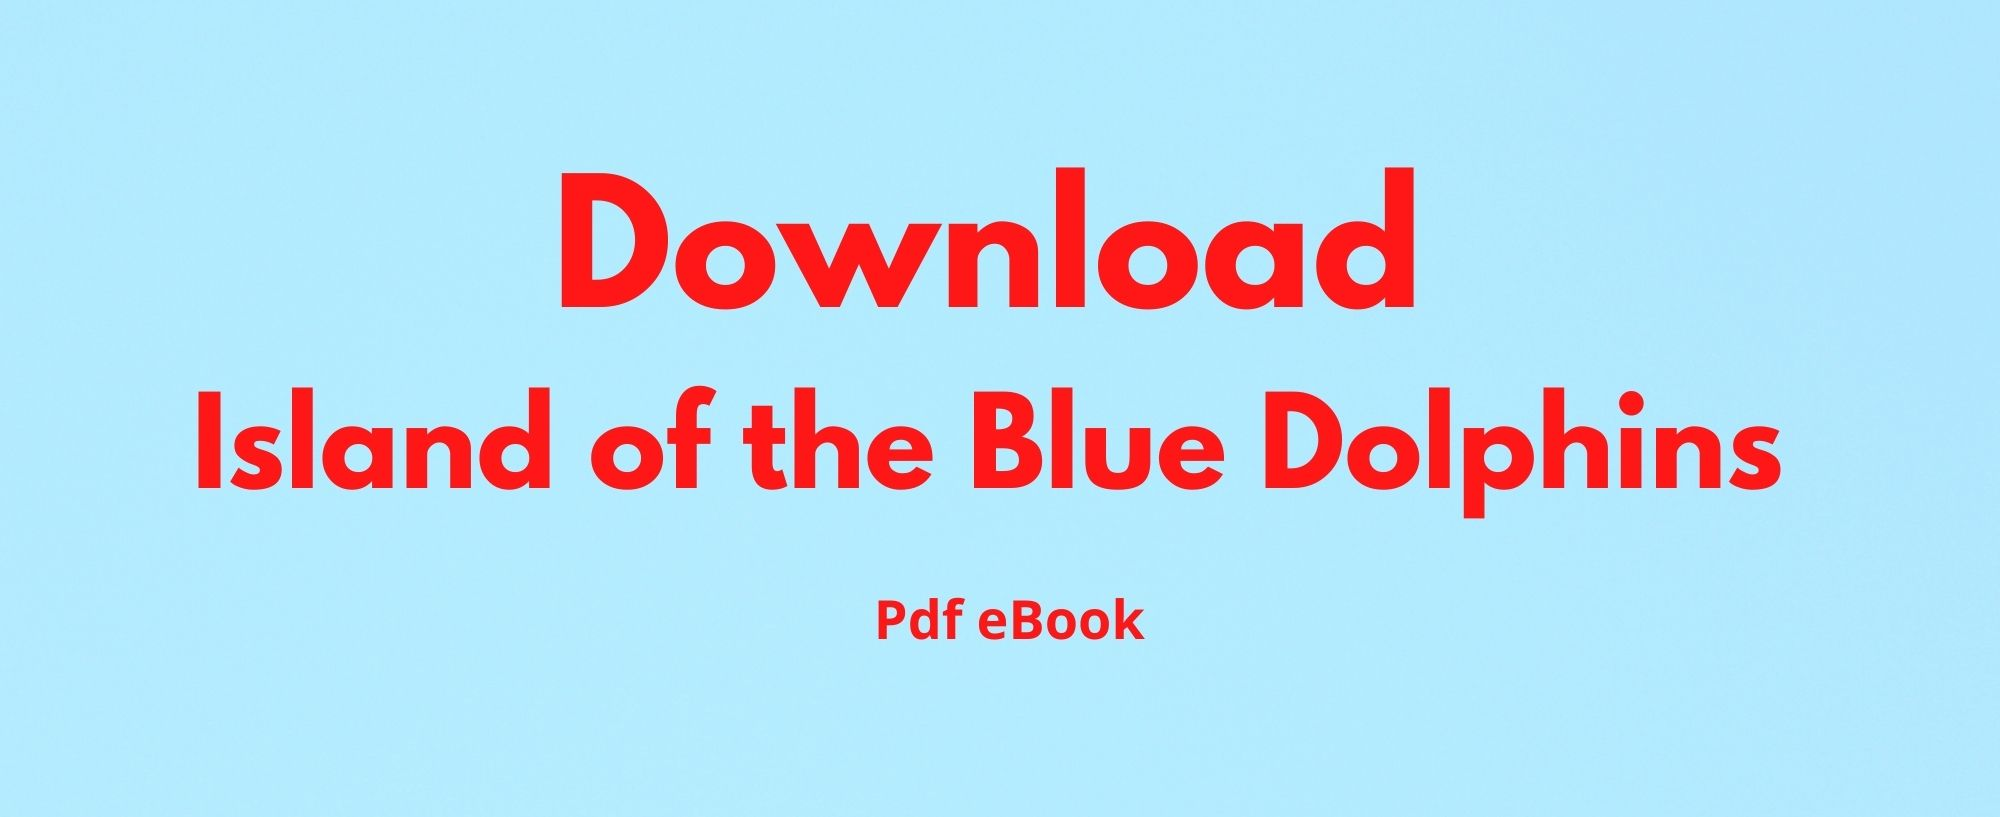 Download Island of the Blue Dolphins Pdf